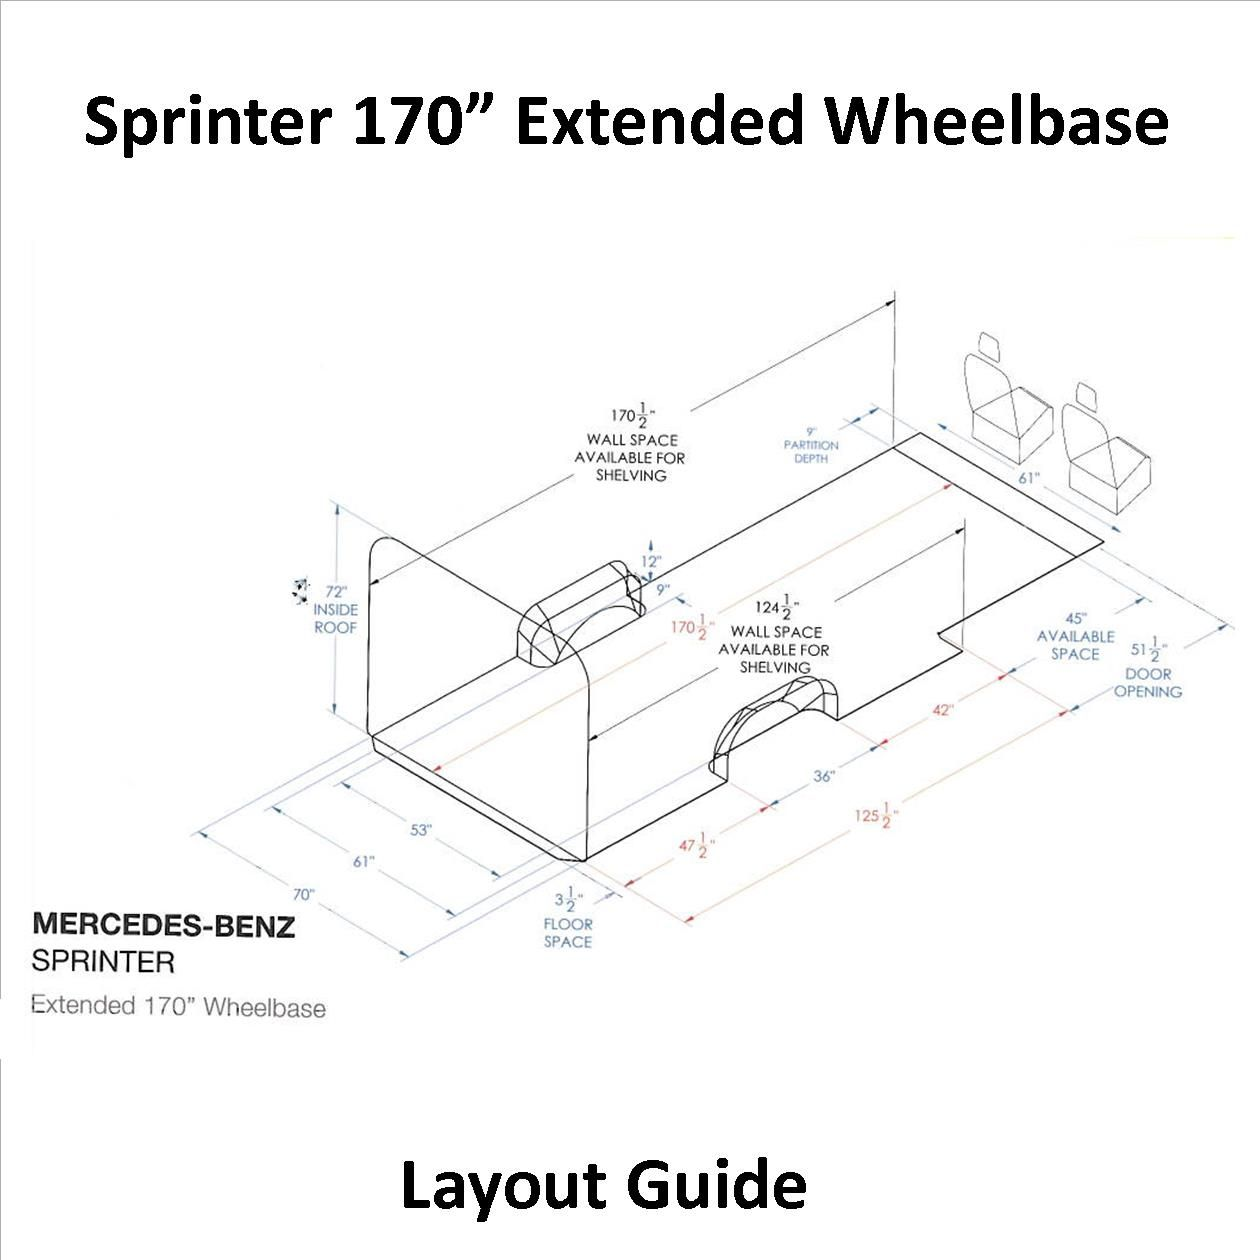 medium resolution of sprinter layout guide 170 extended wb inlad truck van company